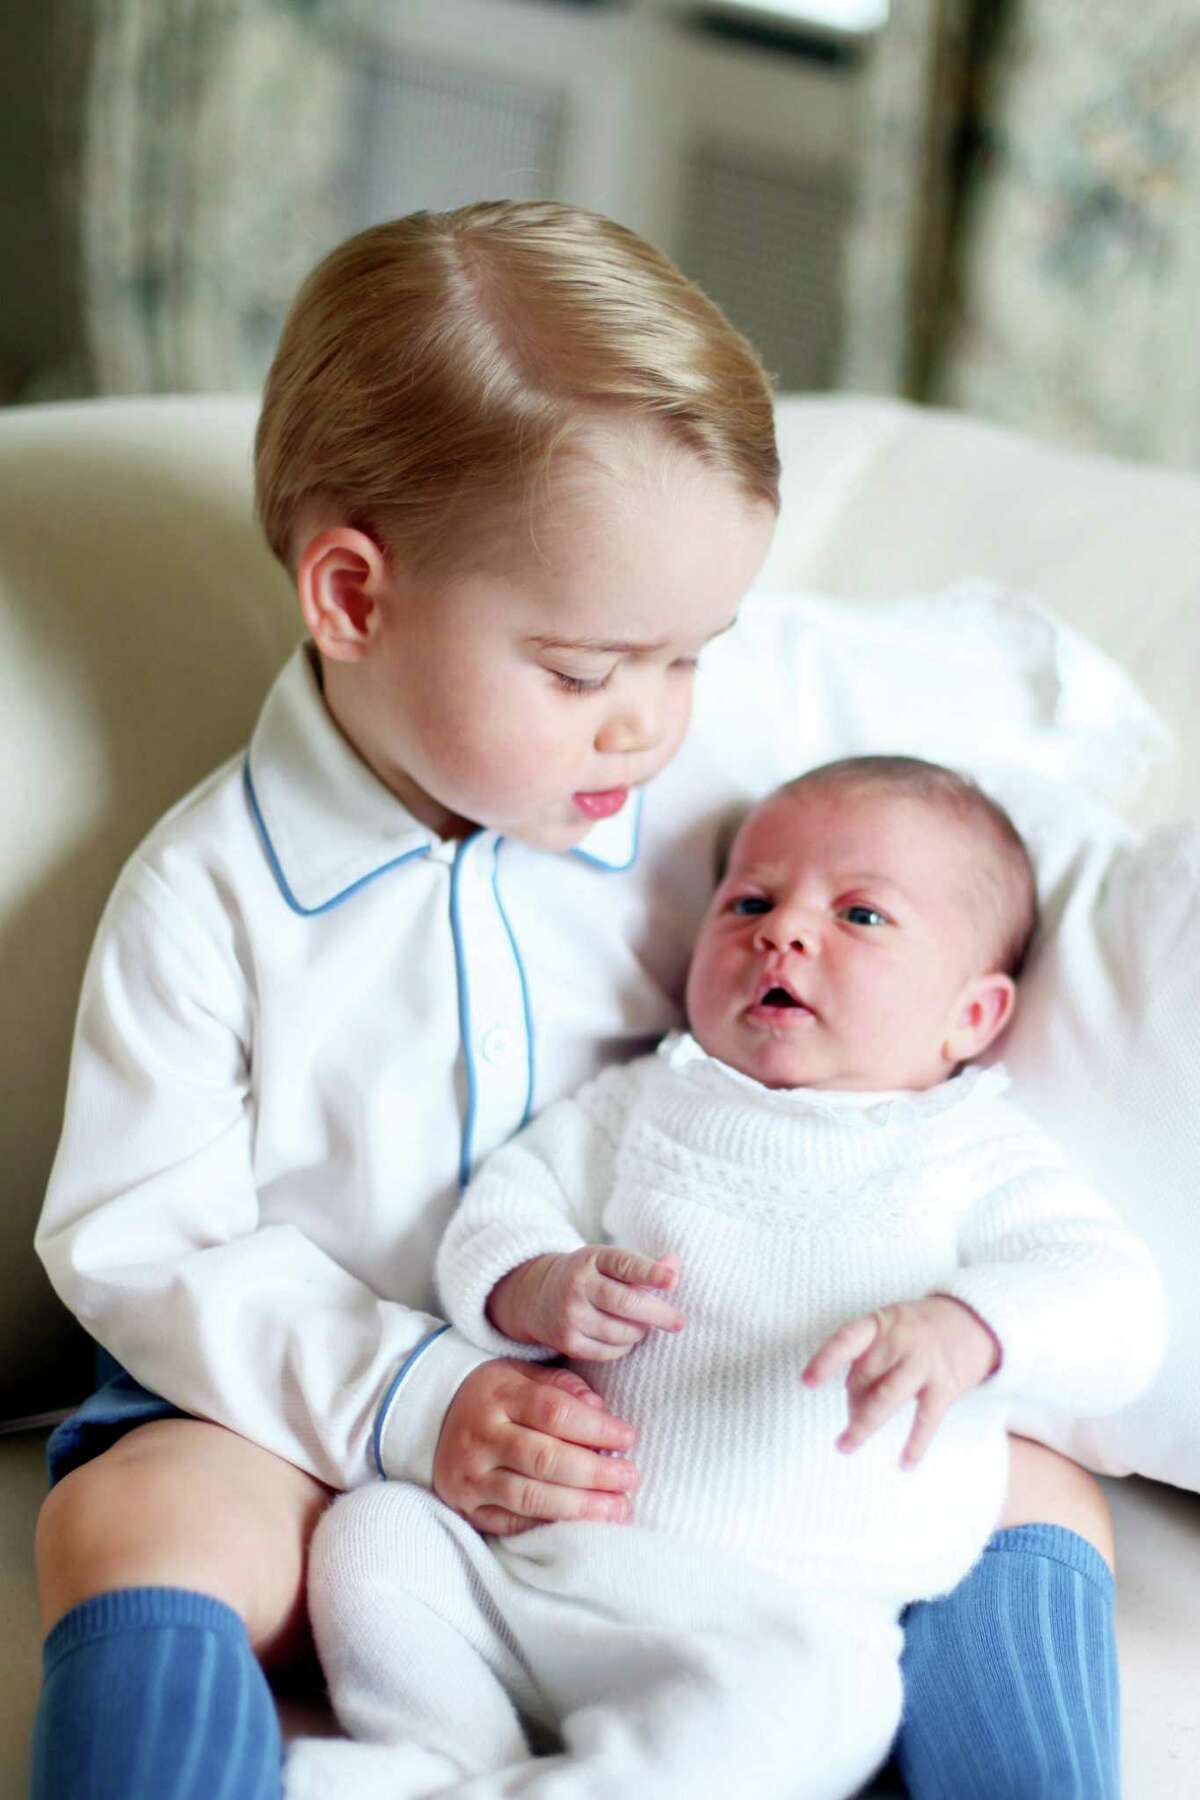 This image made available by Kensington Palace on June 6, 2015, taken by Kate, Duchess of Cambridge, at Amner Hall, eastern England in mid-May 2015 shows Britain's Princess Charlotte, right, being held by her brother, 2-year-old, Prince George.